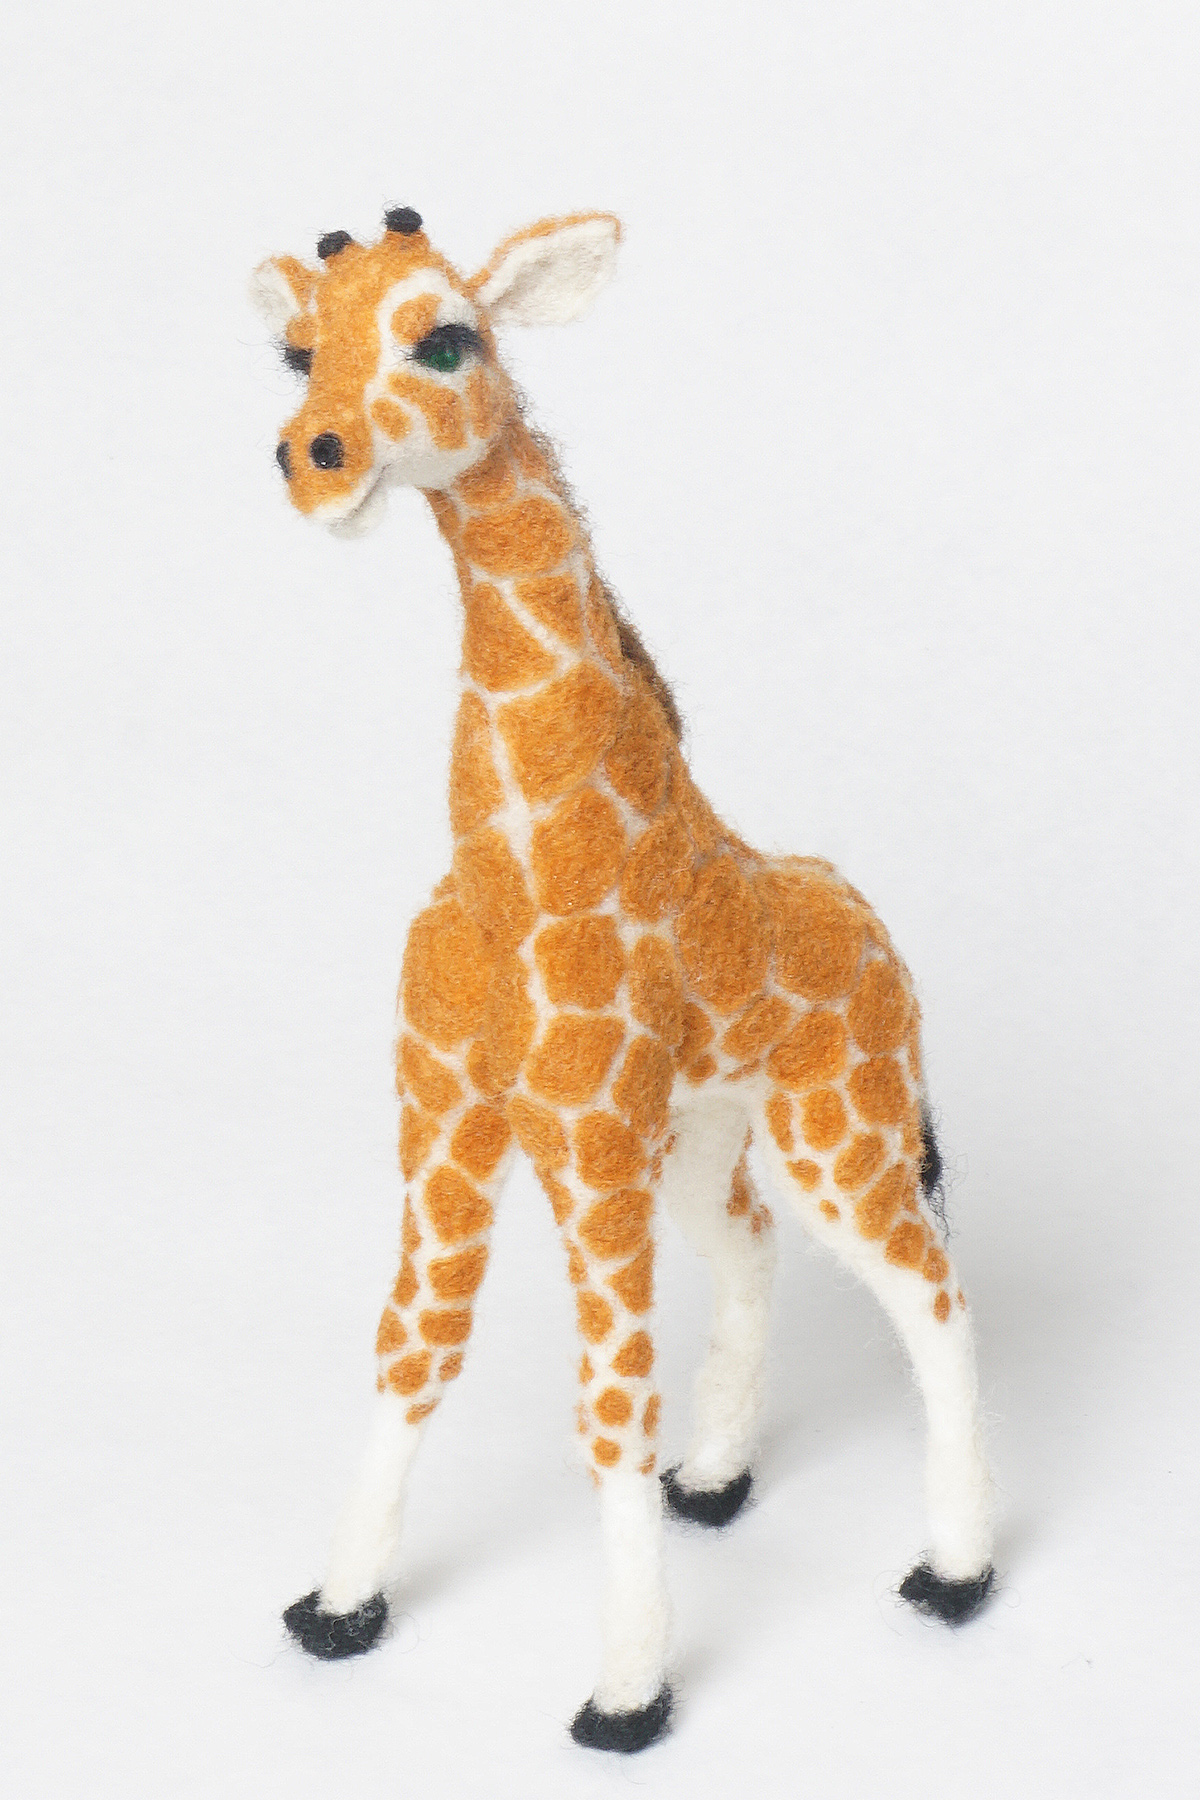 needle felted baby giraffe before her bow and ID bracelet accessories